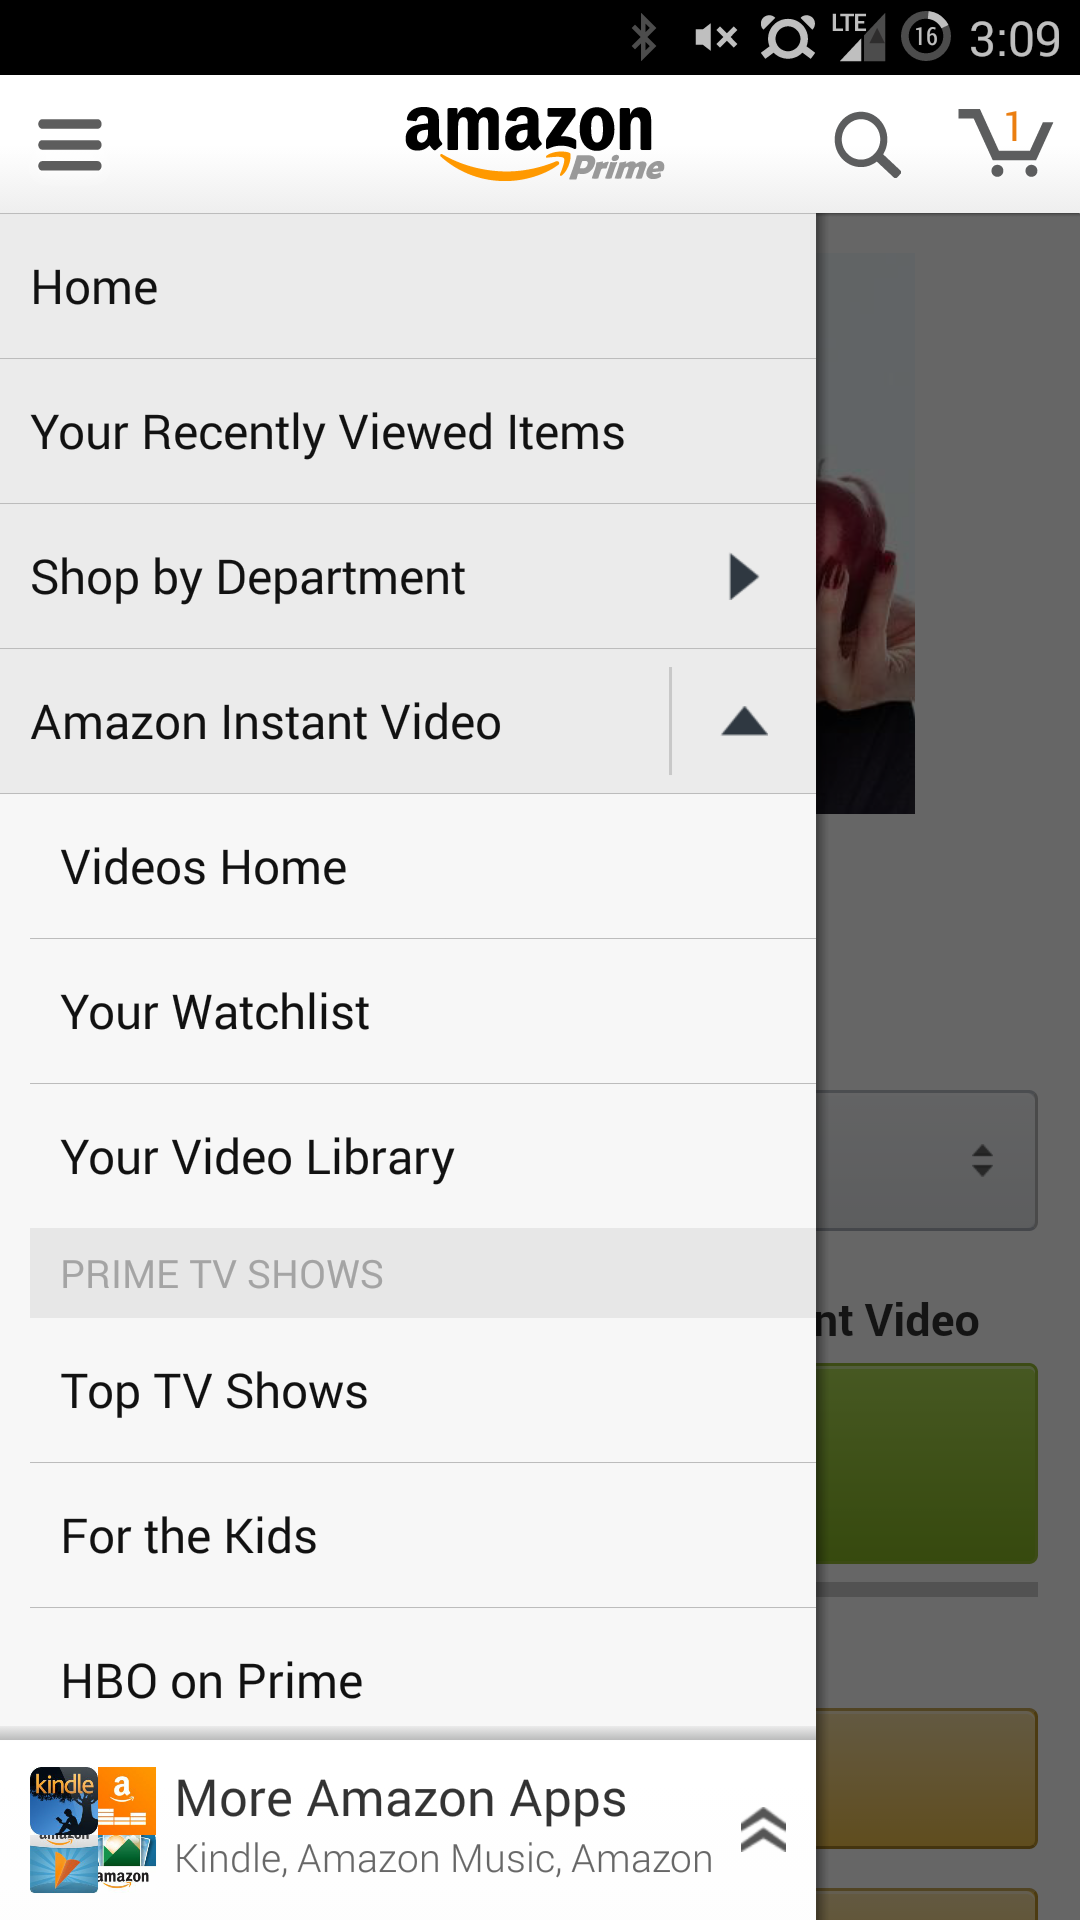 Apk amazon app store download | How to install Amazon